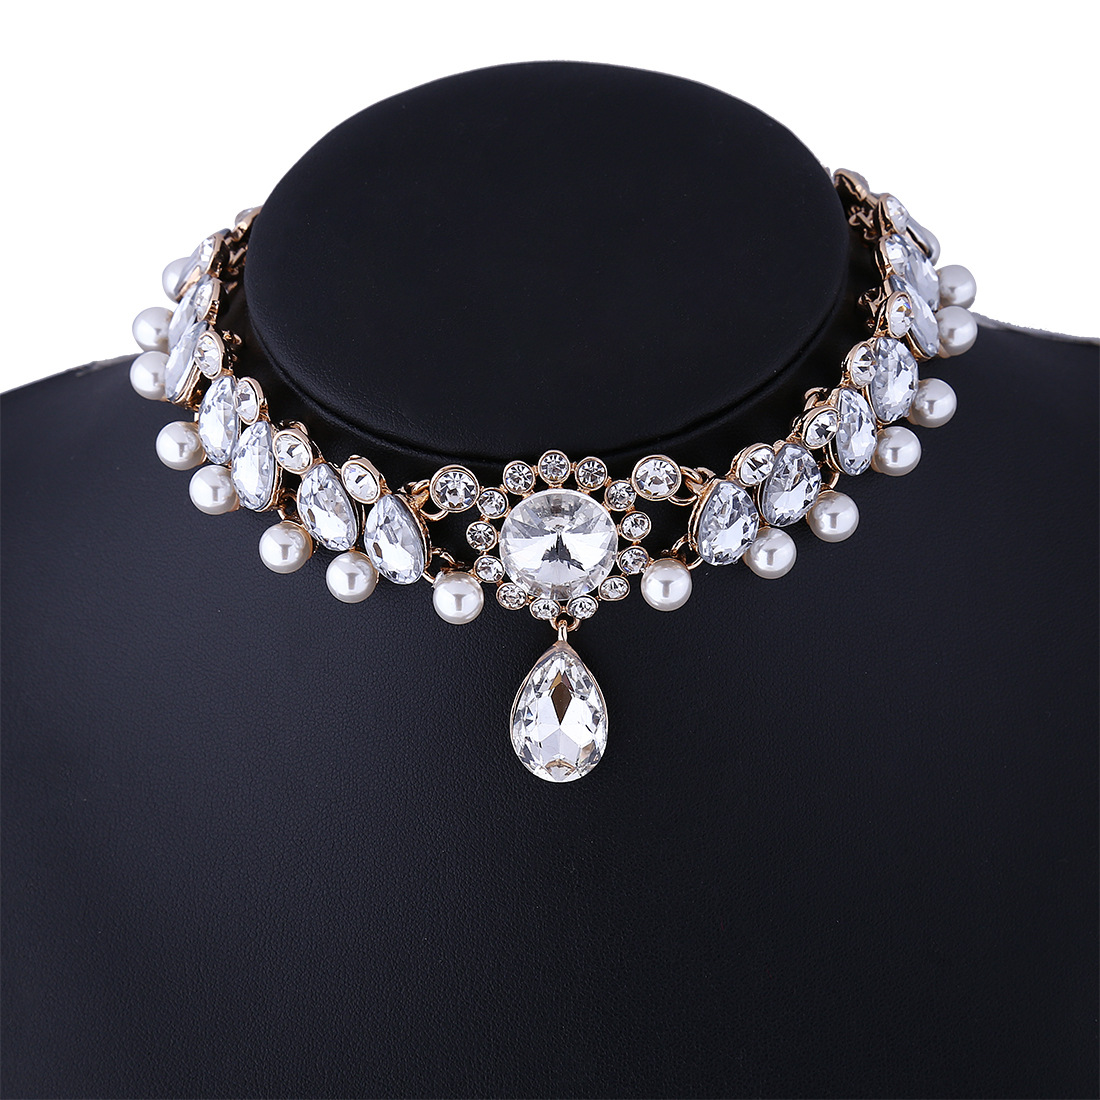 Jewdy Boho Collar Choker Water Drop Crystal Rhinestone pendant Necklace for women Vintage Simulated Pearl Statement Maxi Jewelry 14